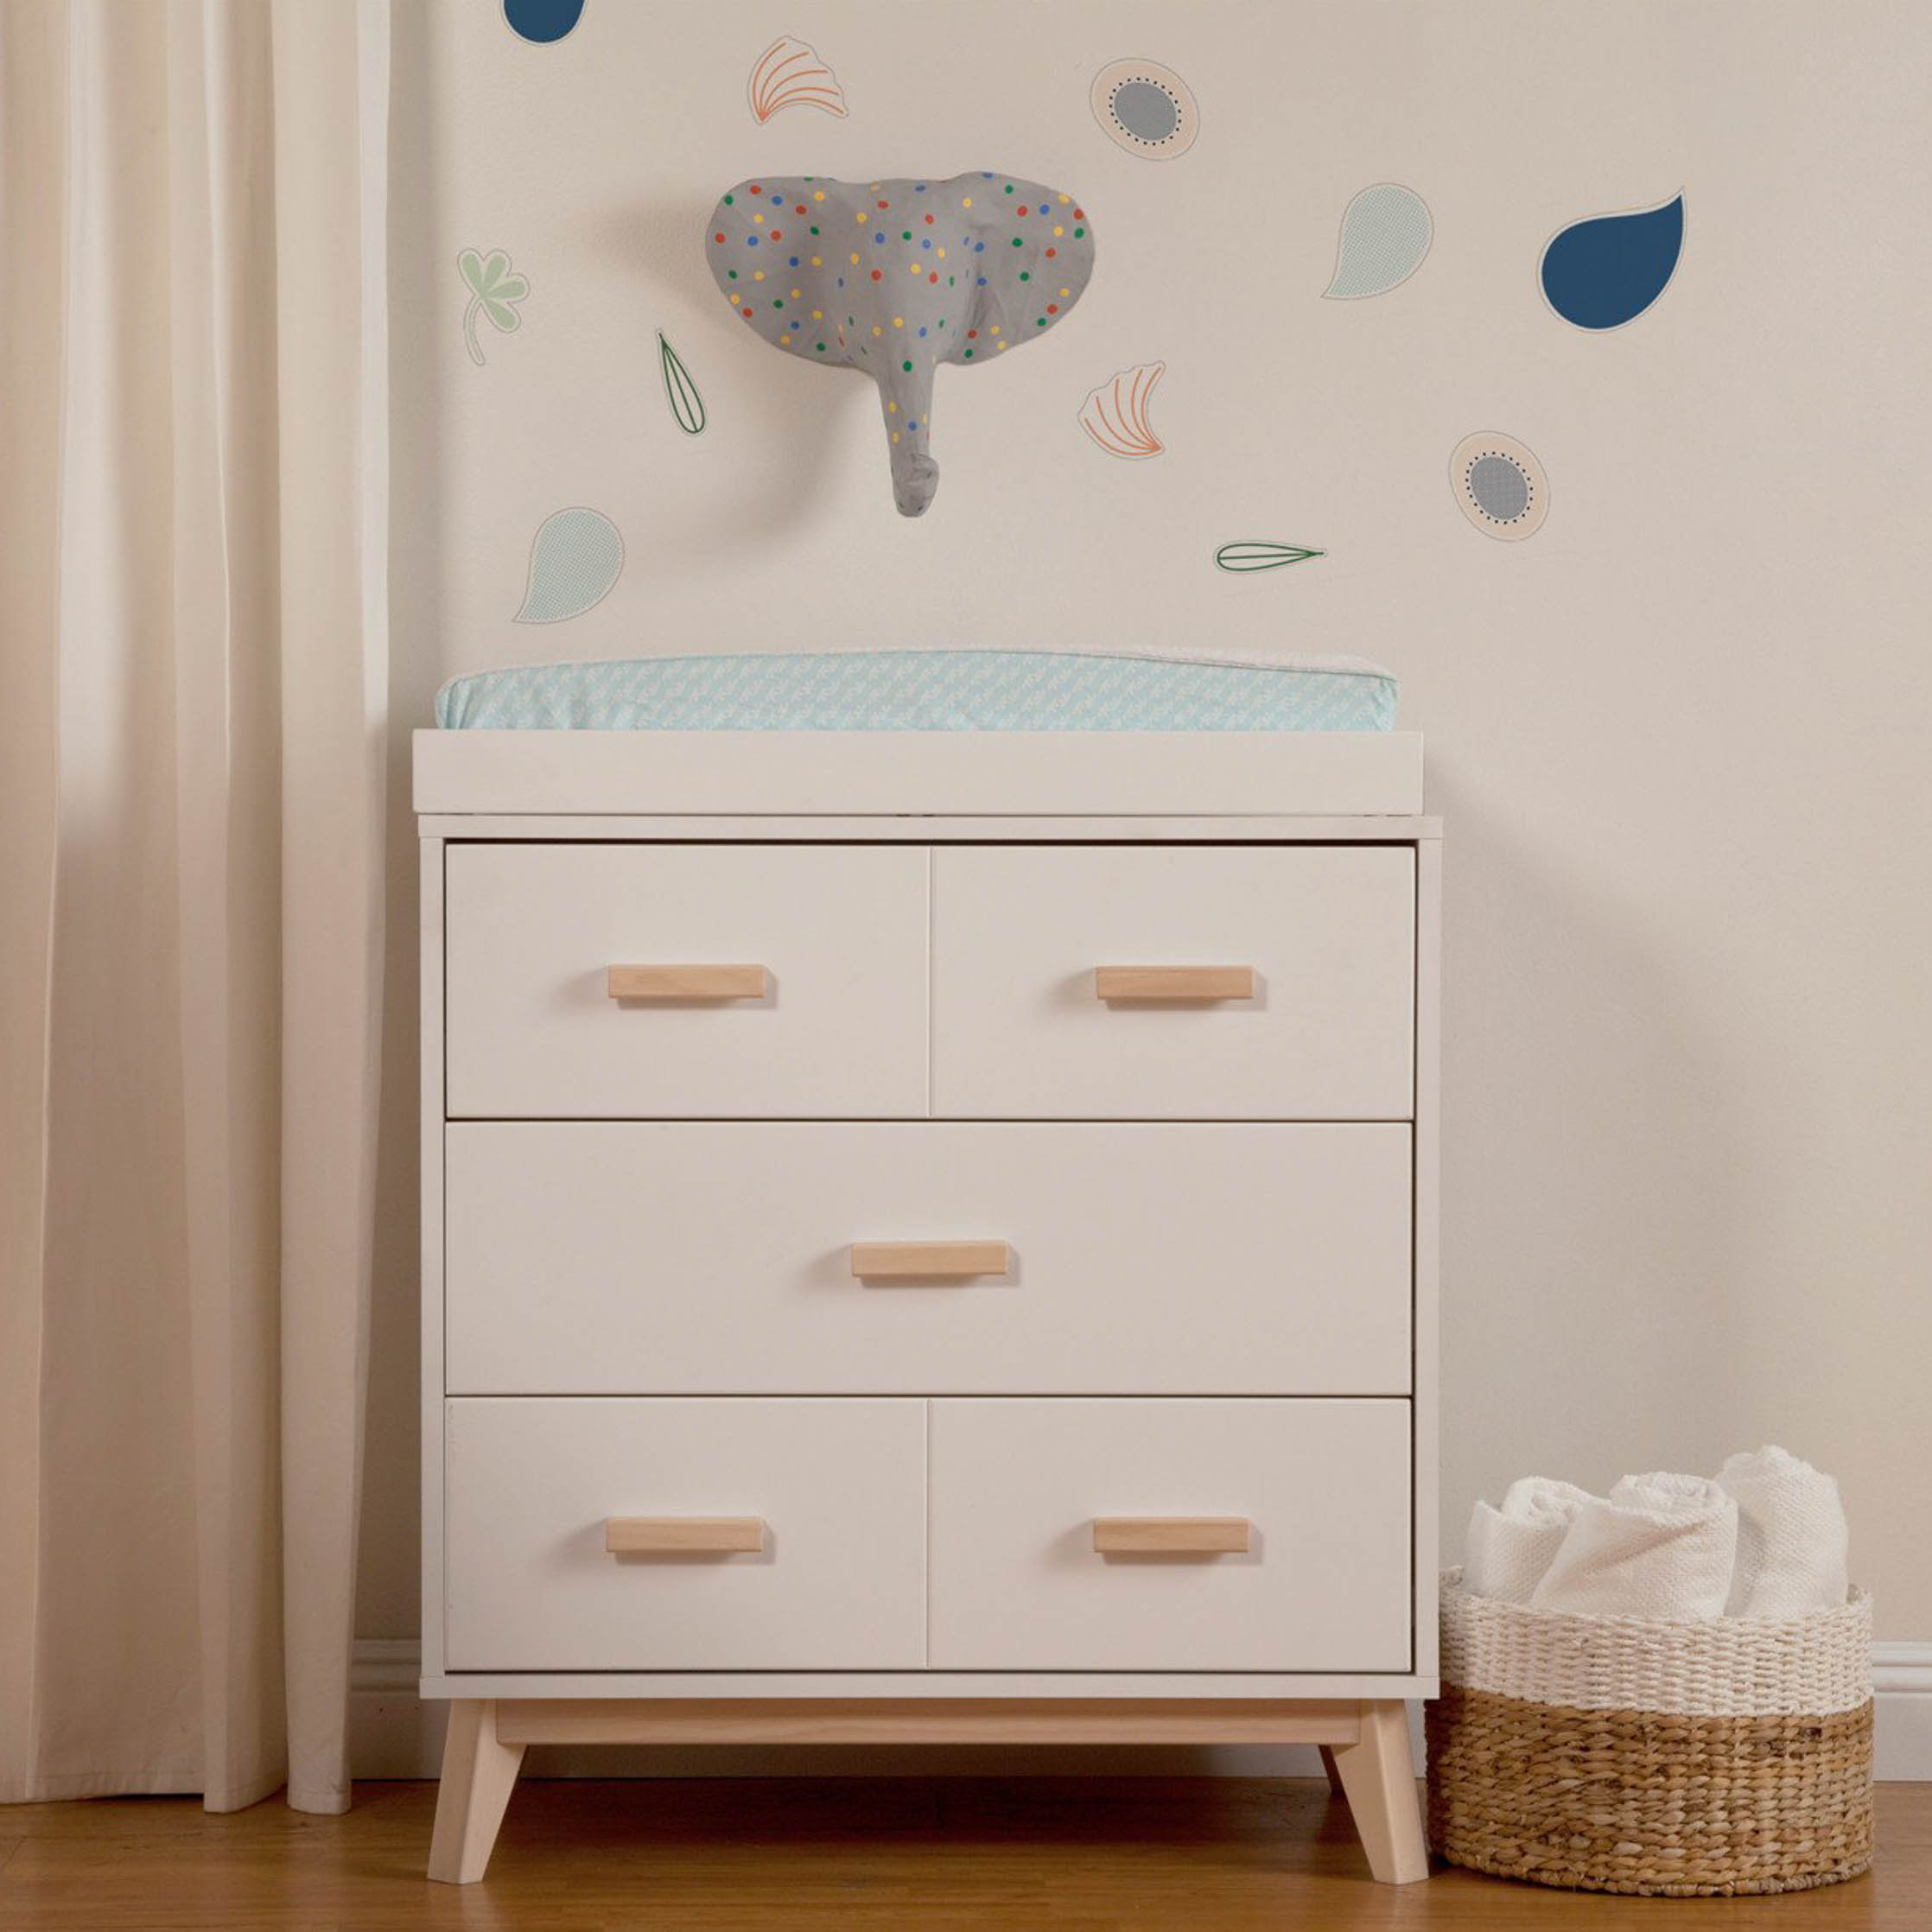 Scoot 3-Drawer Dresser Changer